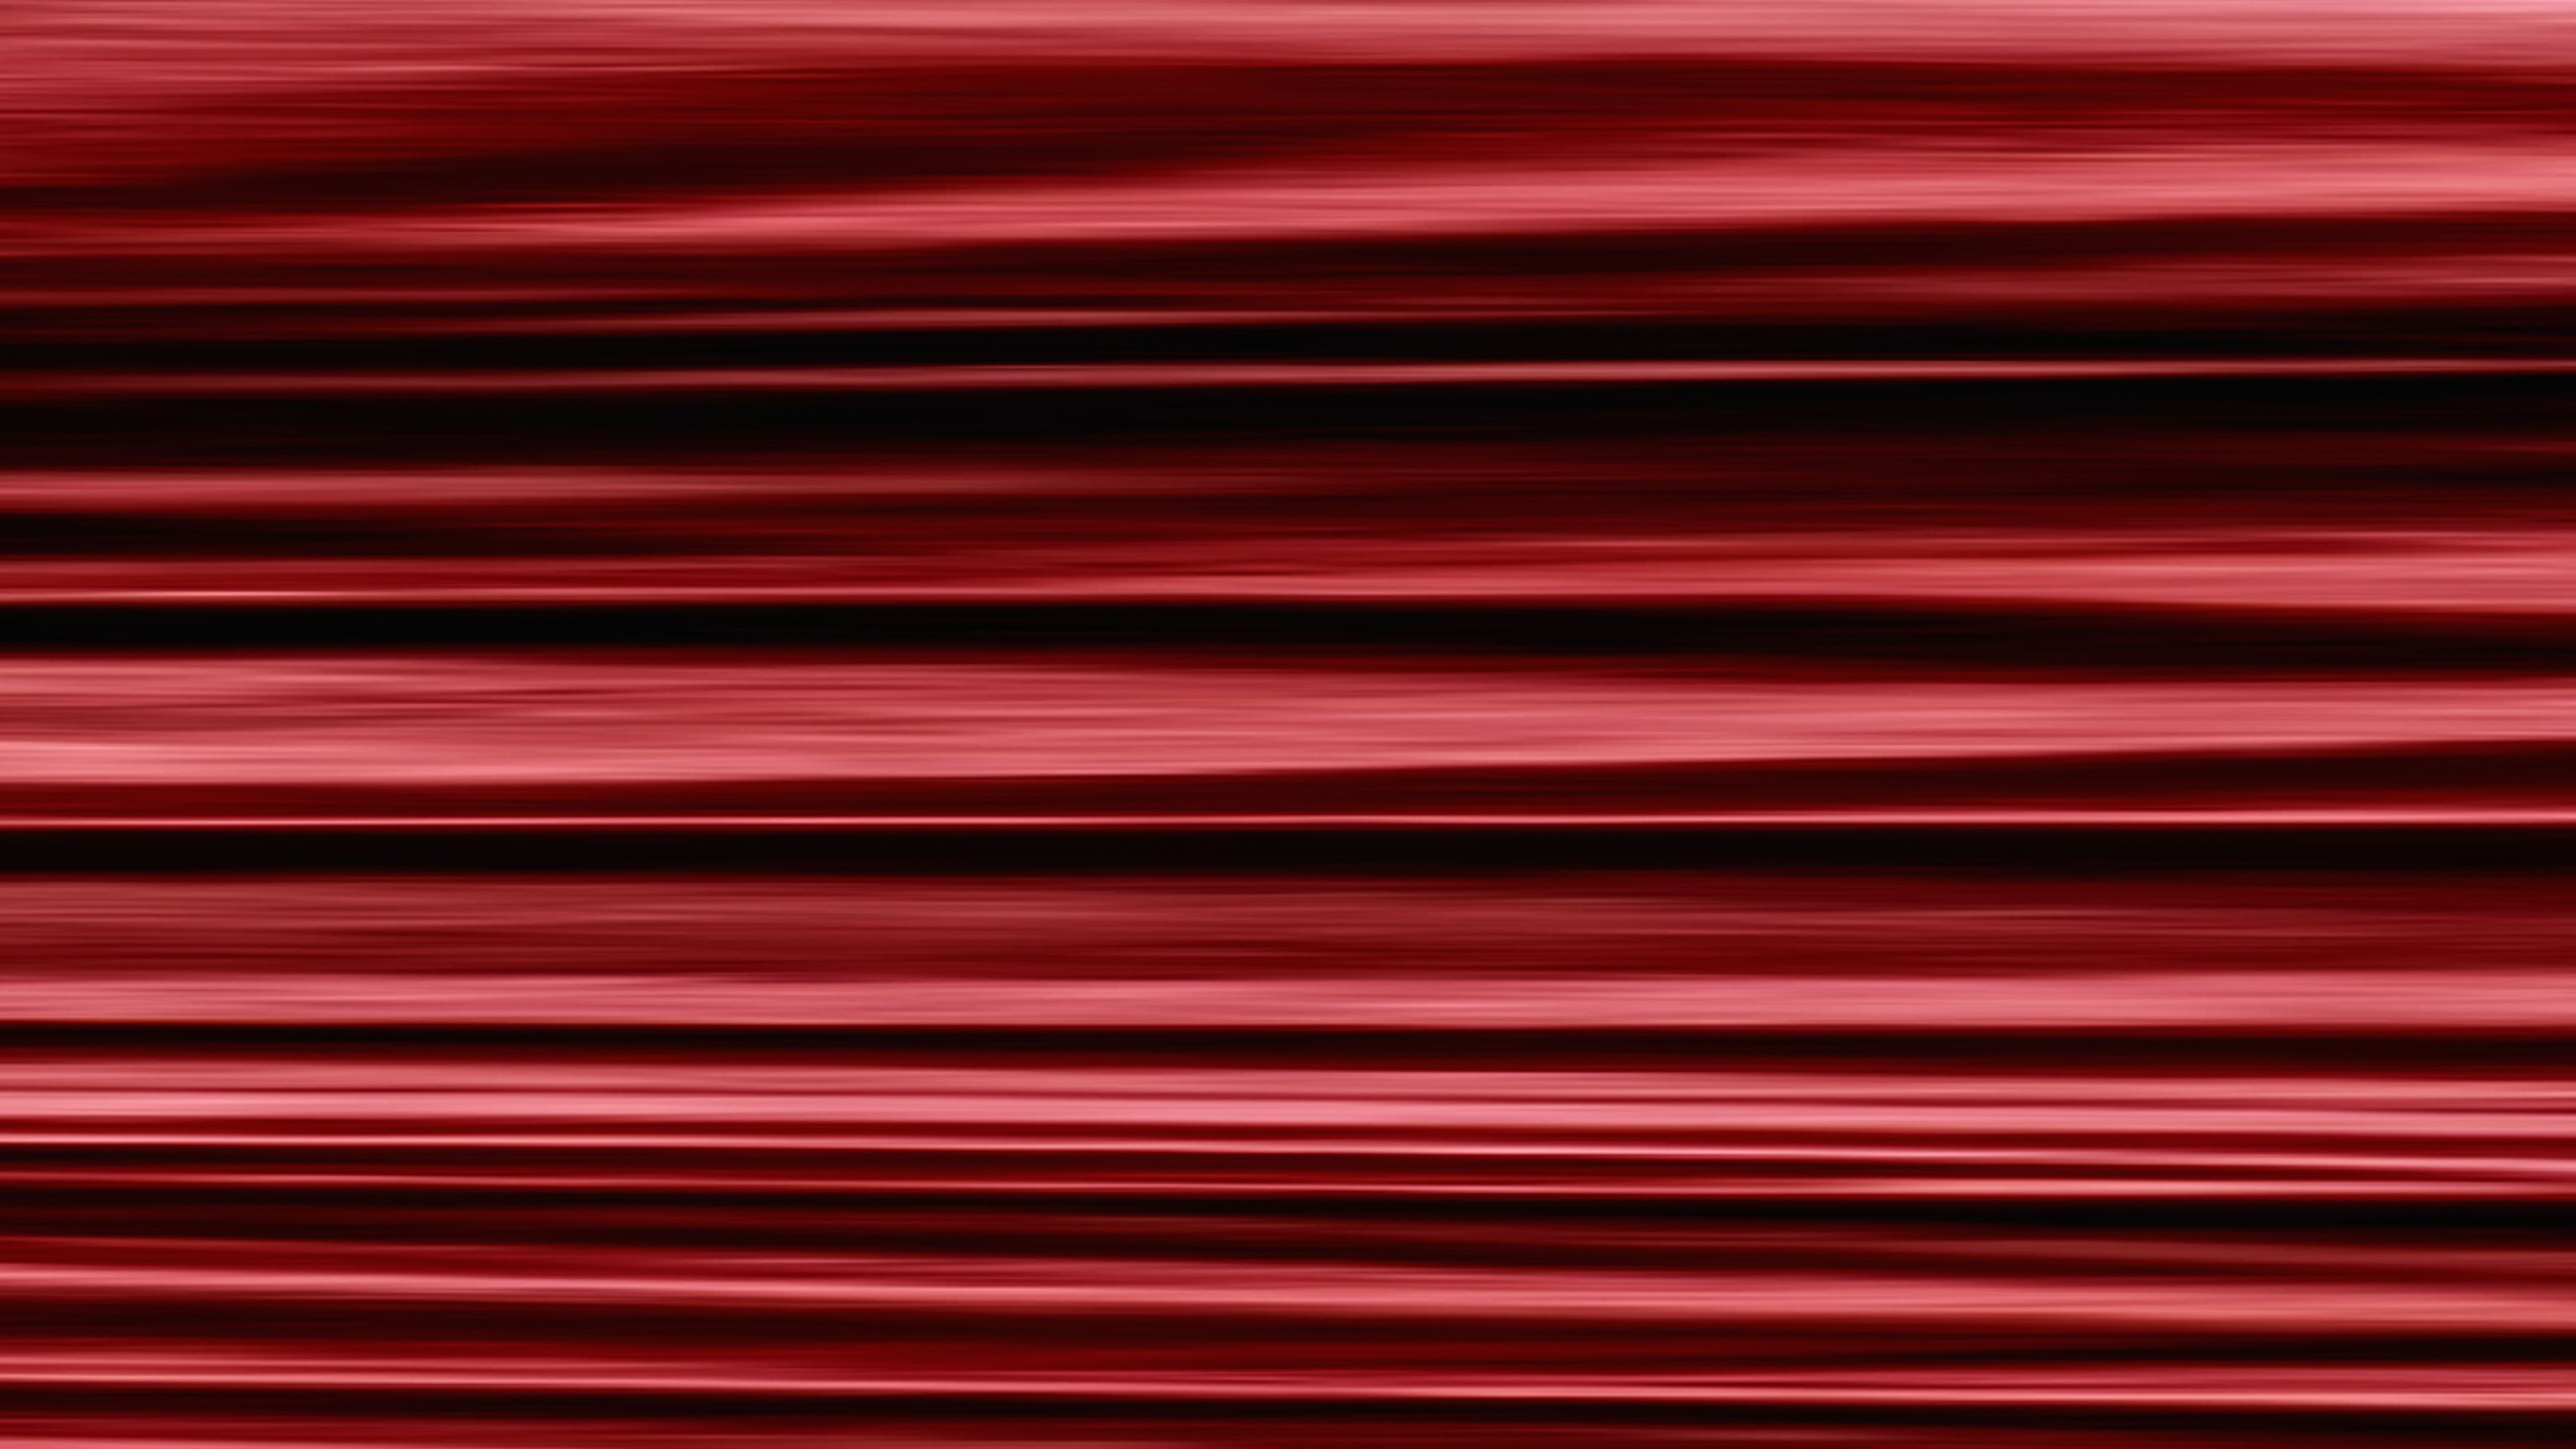 red abstract 5k 1539371503 - Red Abstract 5k - red wallpapers, hd-wallpapers, abstract wallpapers, 5k wallpapers, 4k-wallpapers